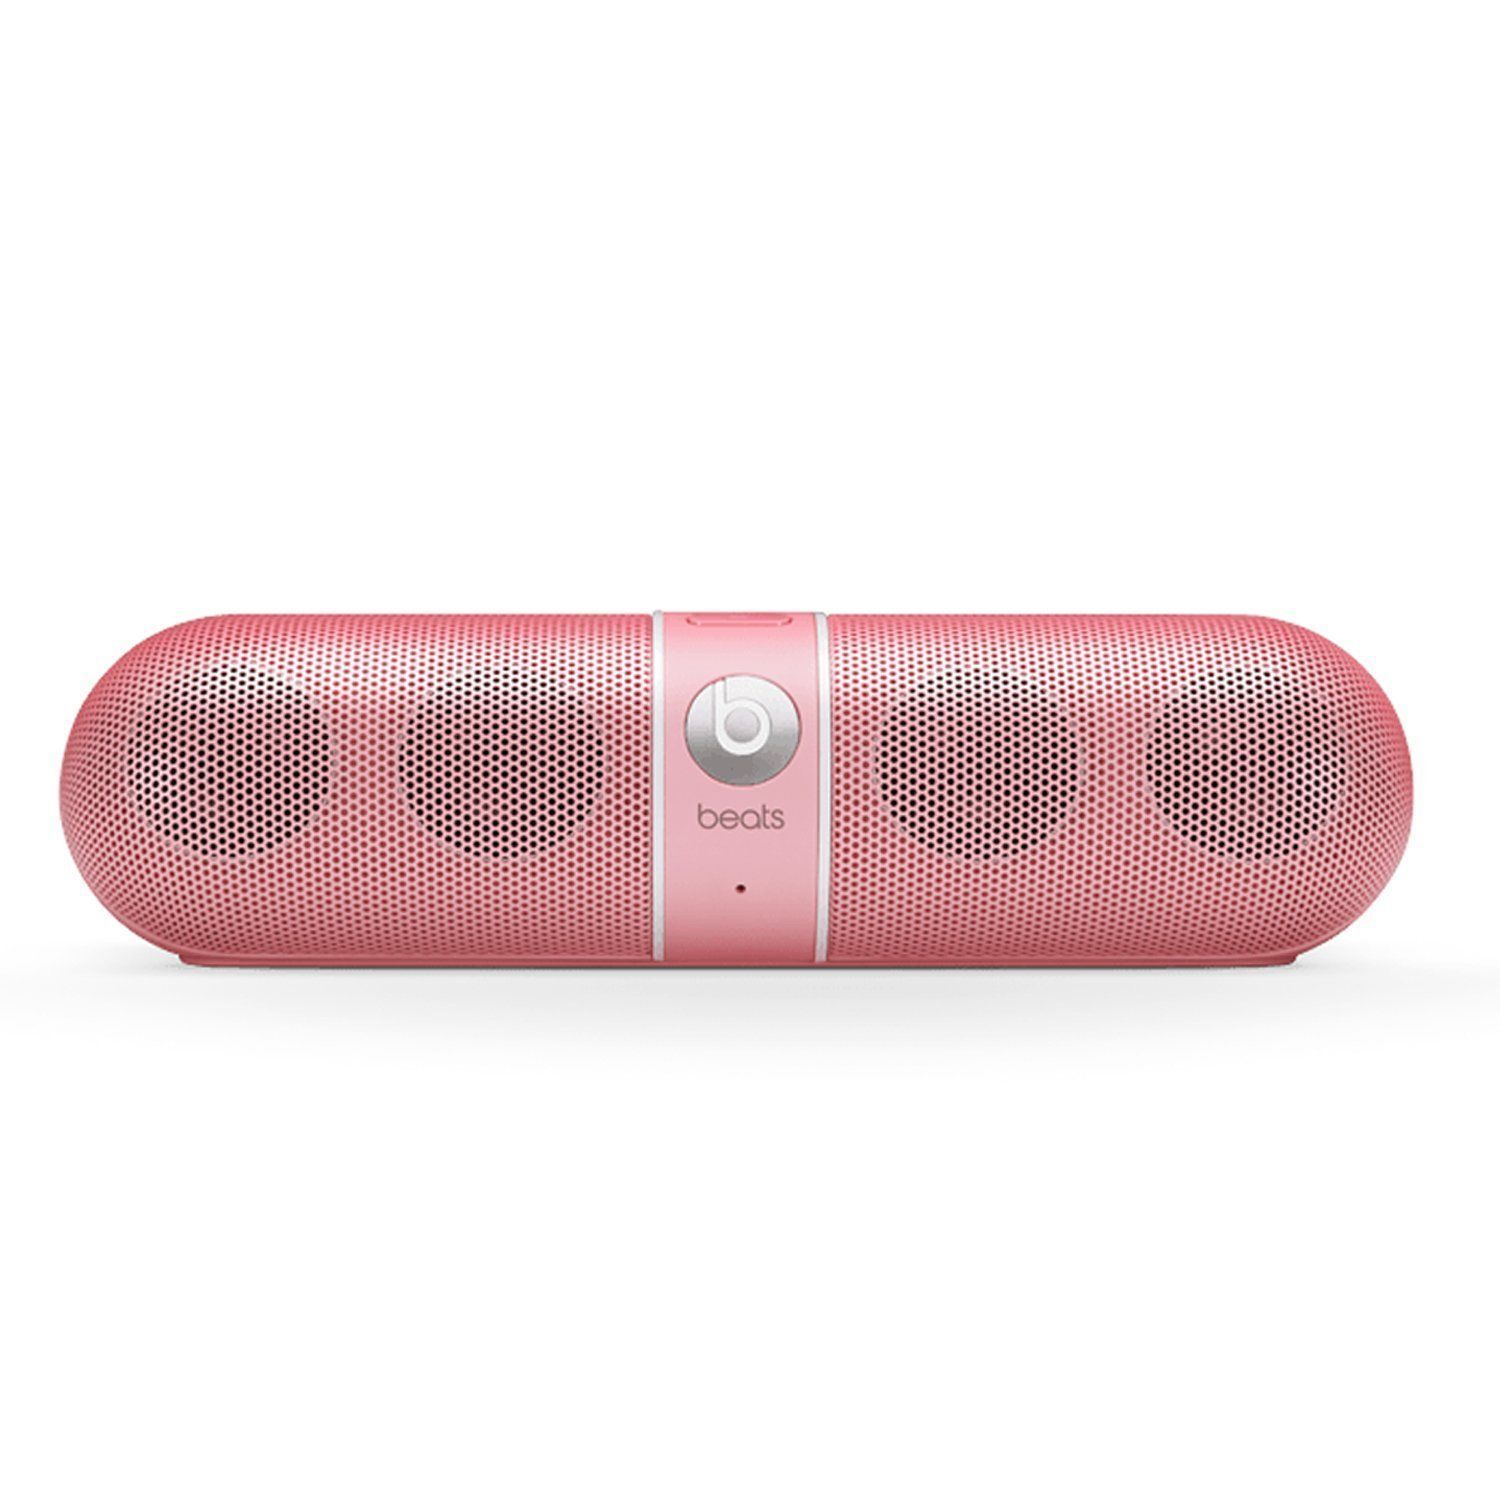 Beats Pill Nicki Pink Portable Rechargeable Wireless Bluetooth Stereo Speaker